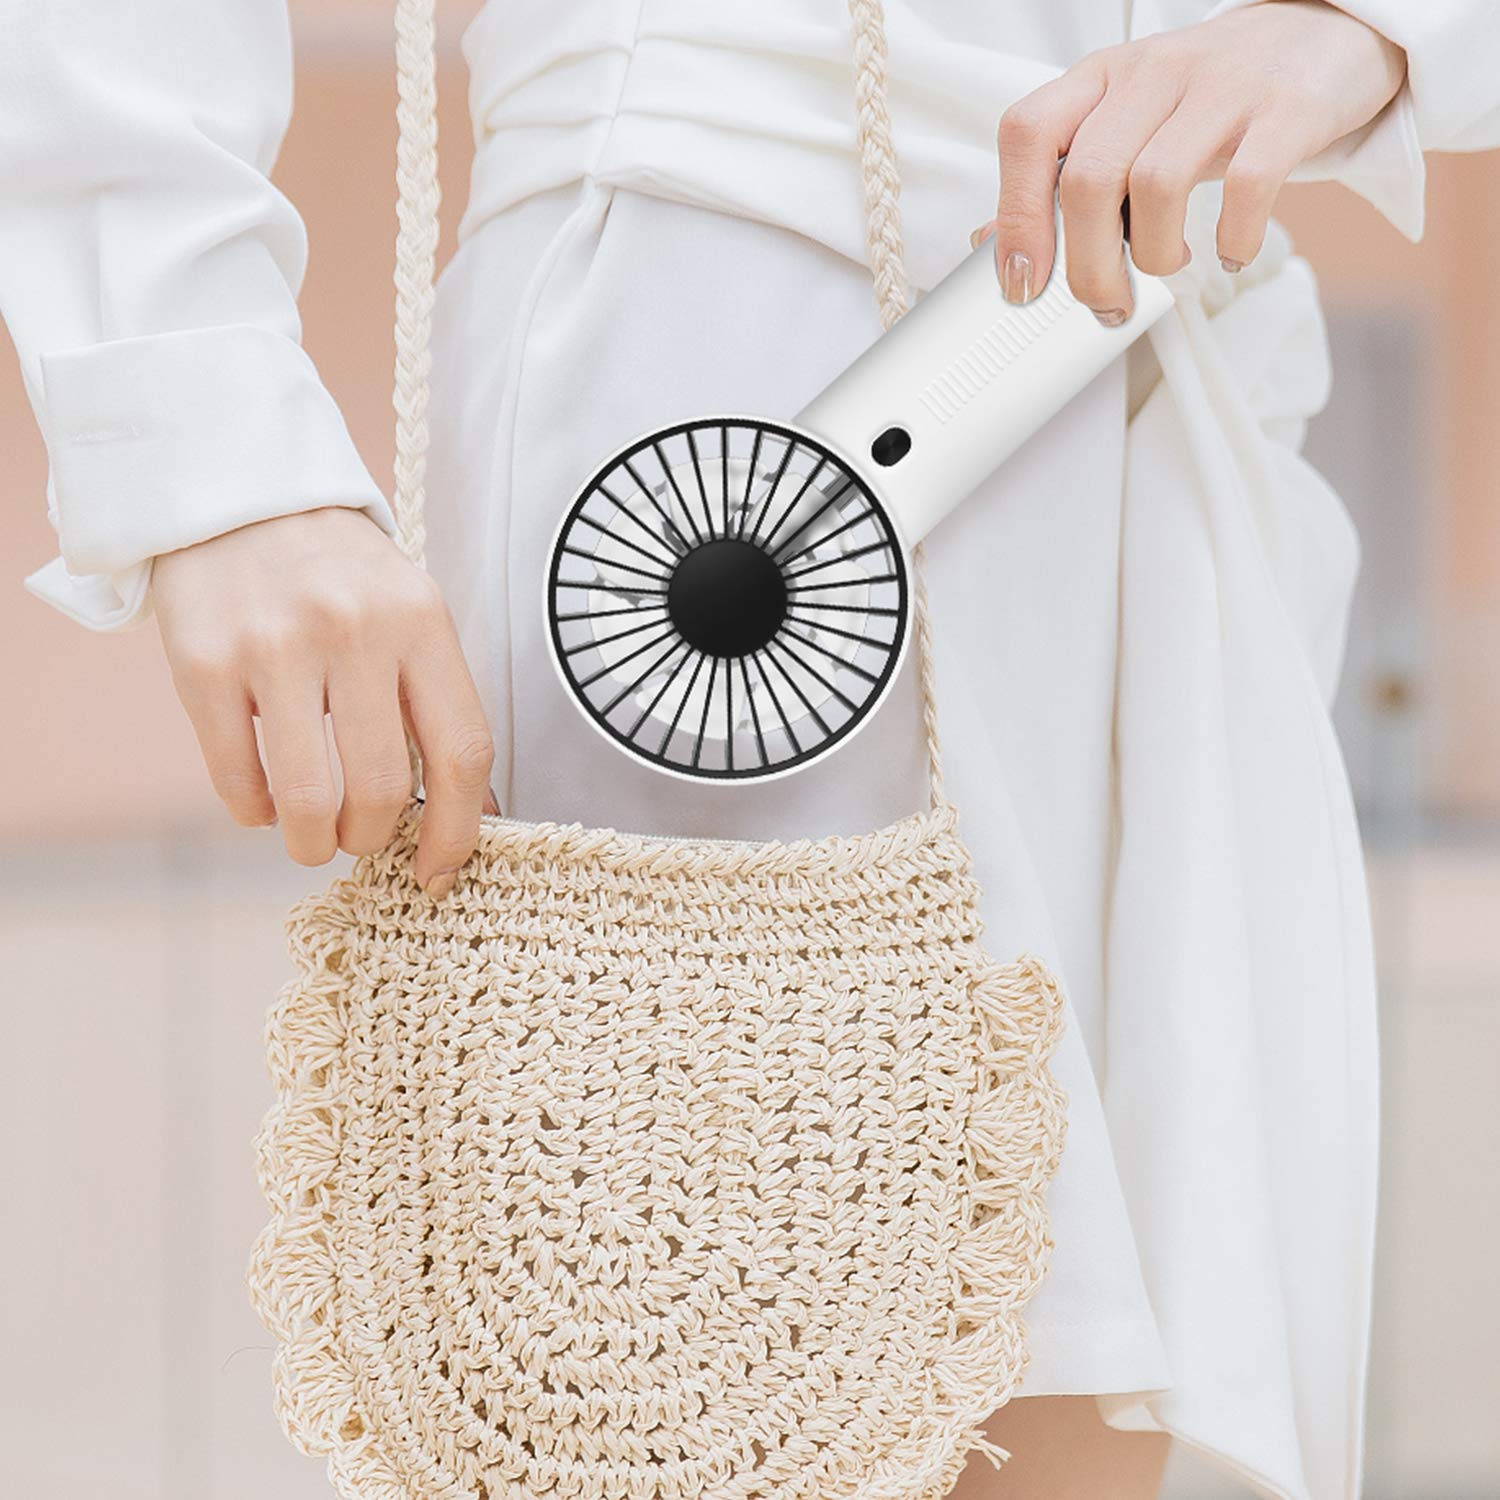 MADETEC Small Handheld Fan, Portable Mini Personal Fan with USB Rechargeable Battery Operated Electric Cooling Fan for Office Room Outdoor Household Traveling (Handheld Fan)